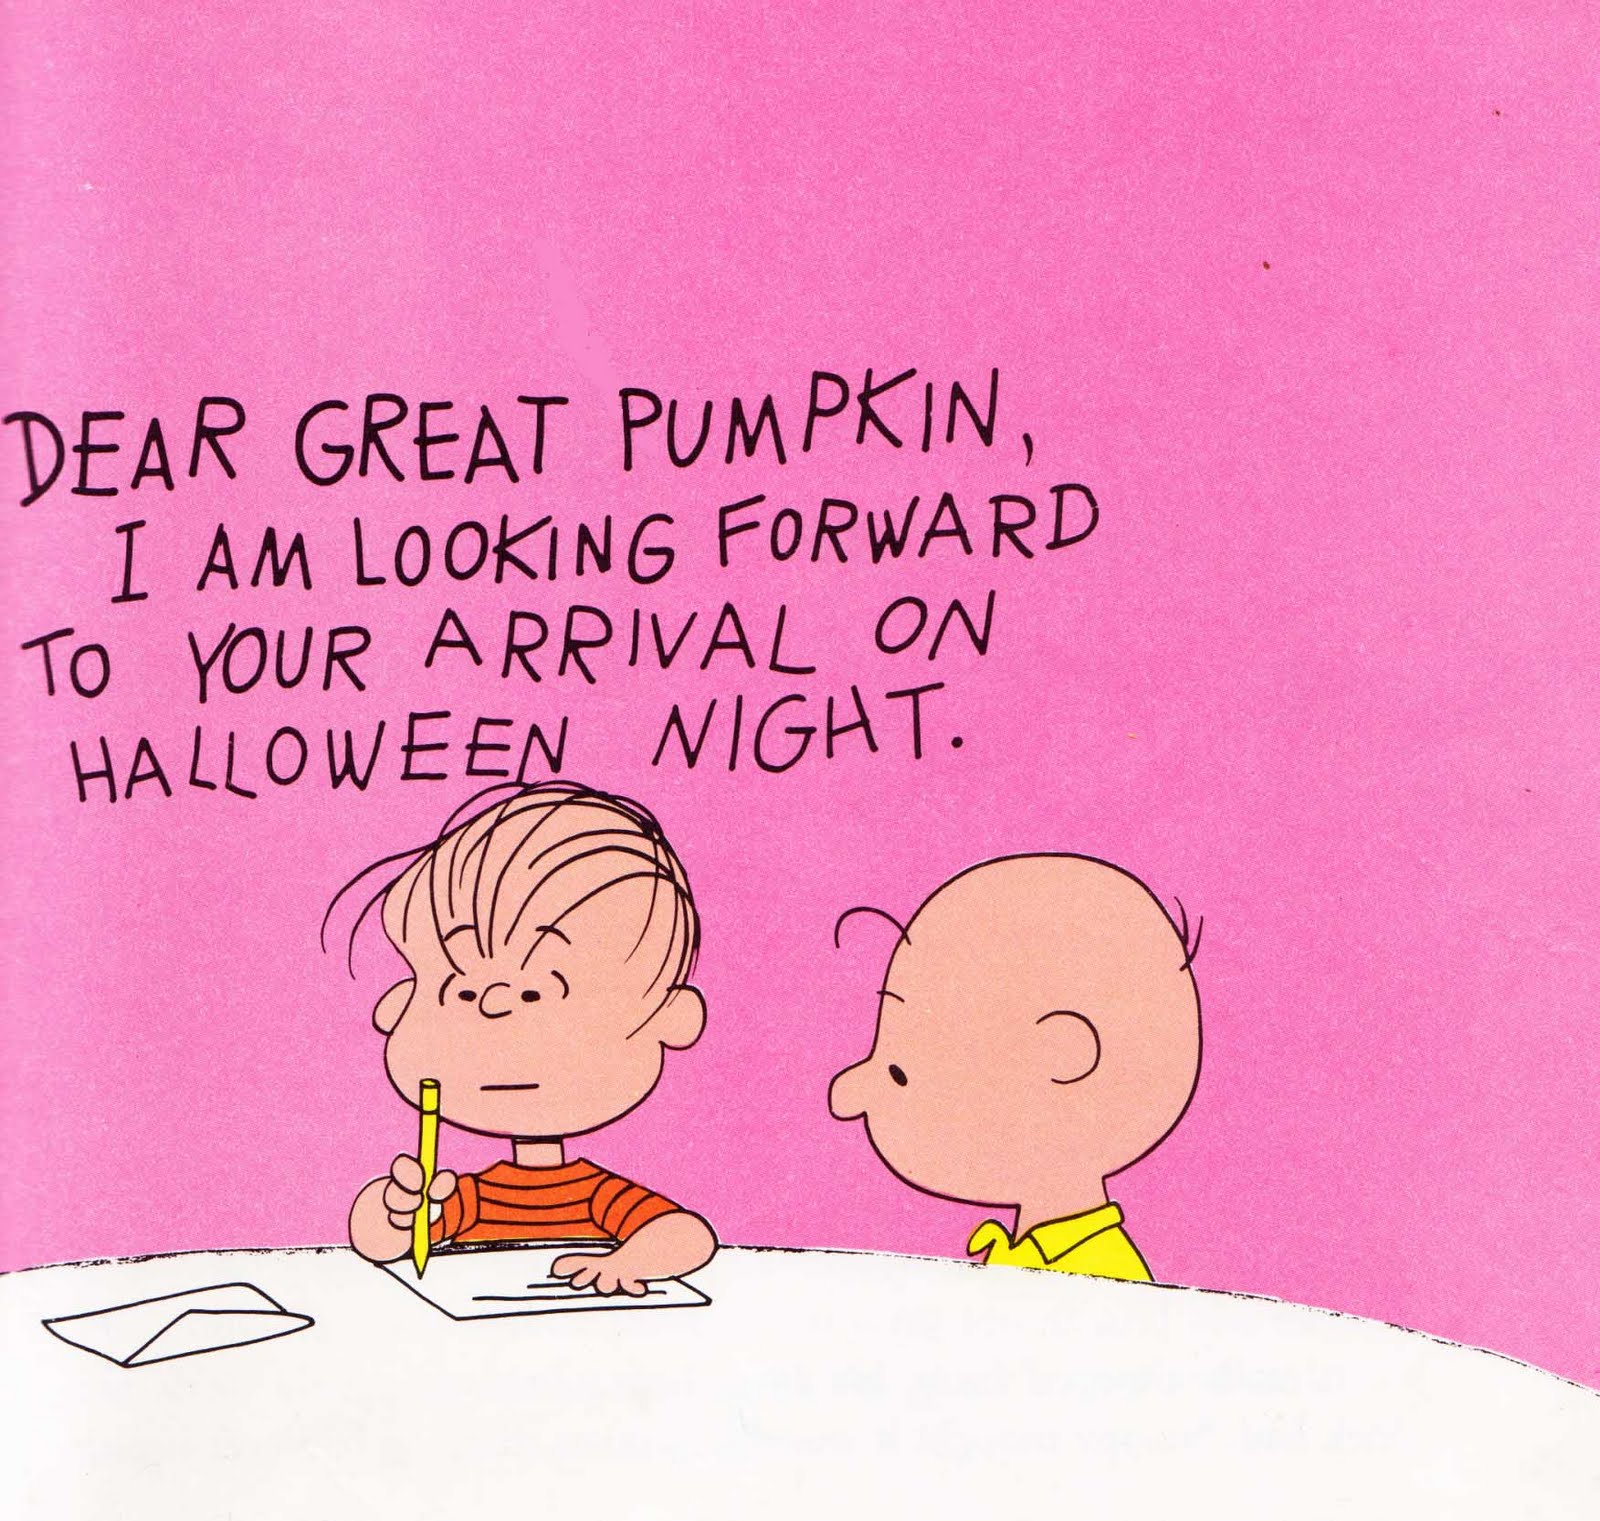 It's The Great Pumpkin Charlie Brown Quotes Magnificent Vintage Kids' Books My Kid Loves It's The Great Pumpkin Charlie